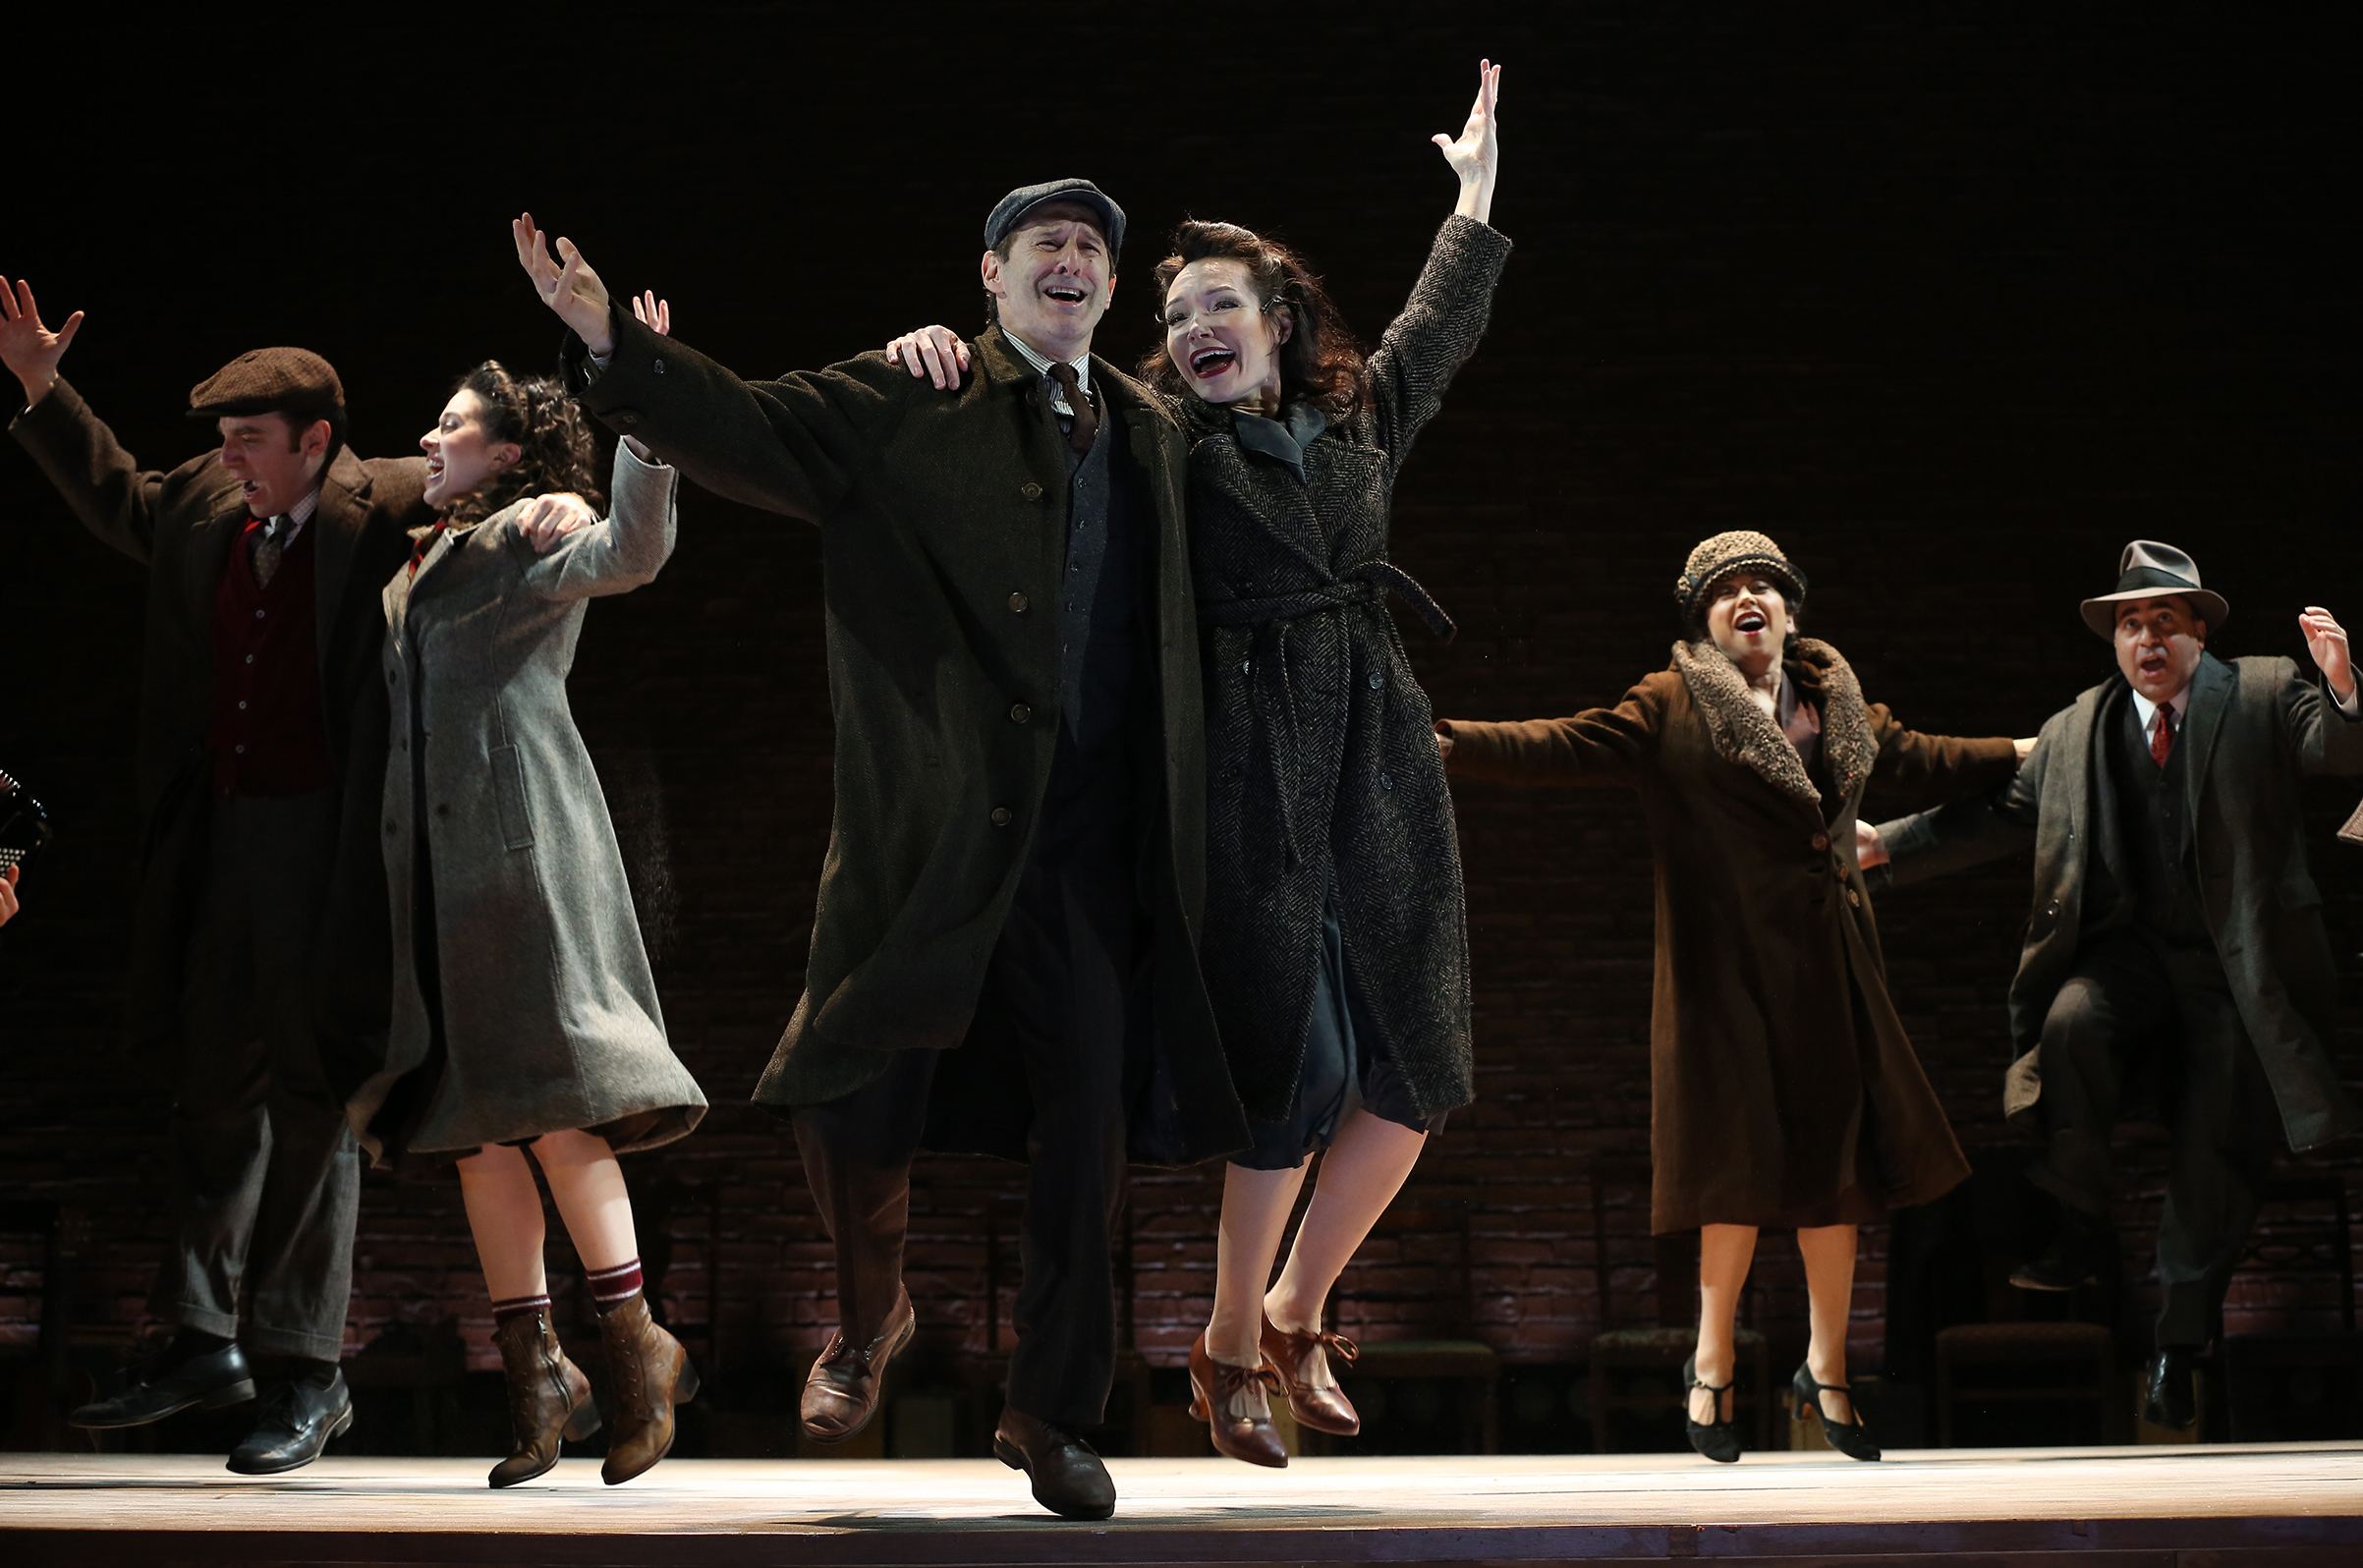 Max Gordon Moore, Adina Verson, Richard Topol, Katrina Lenk, Mimi Lieber and Steven Rattazzi in INDECENT.